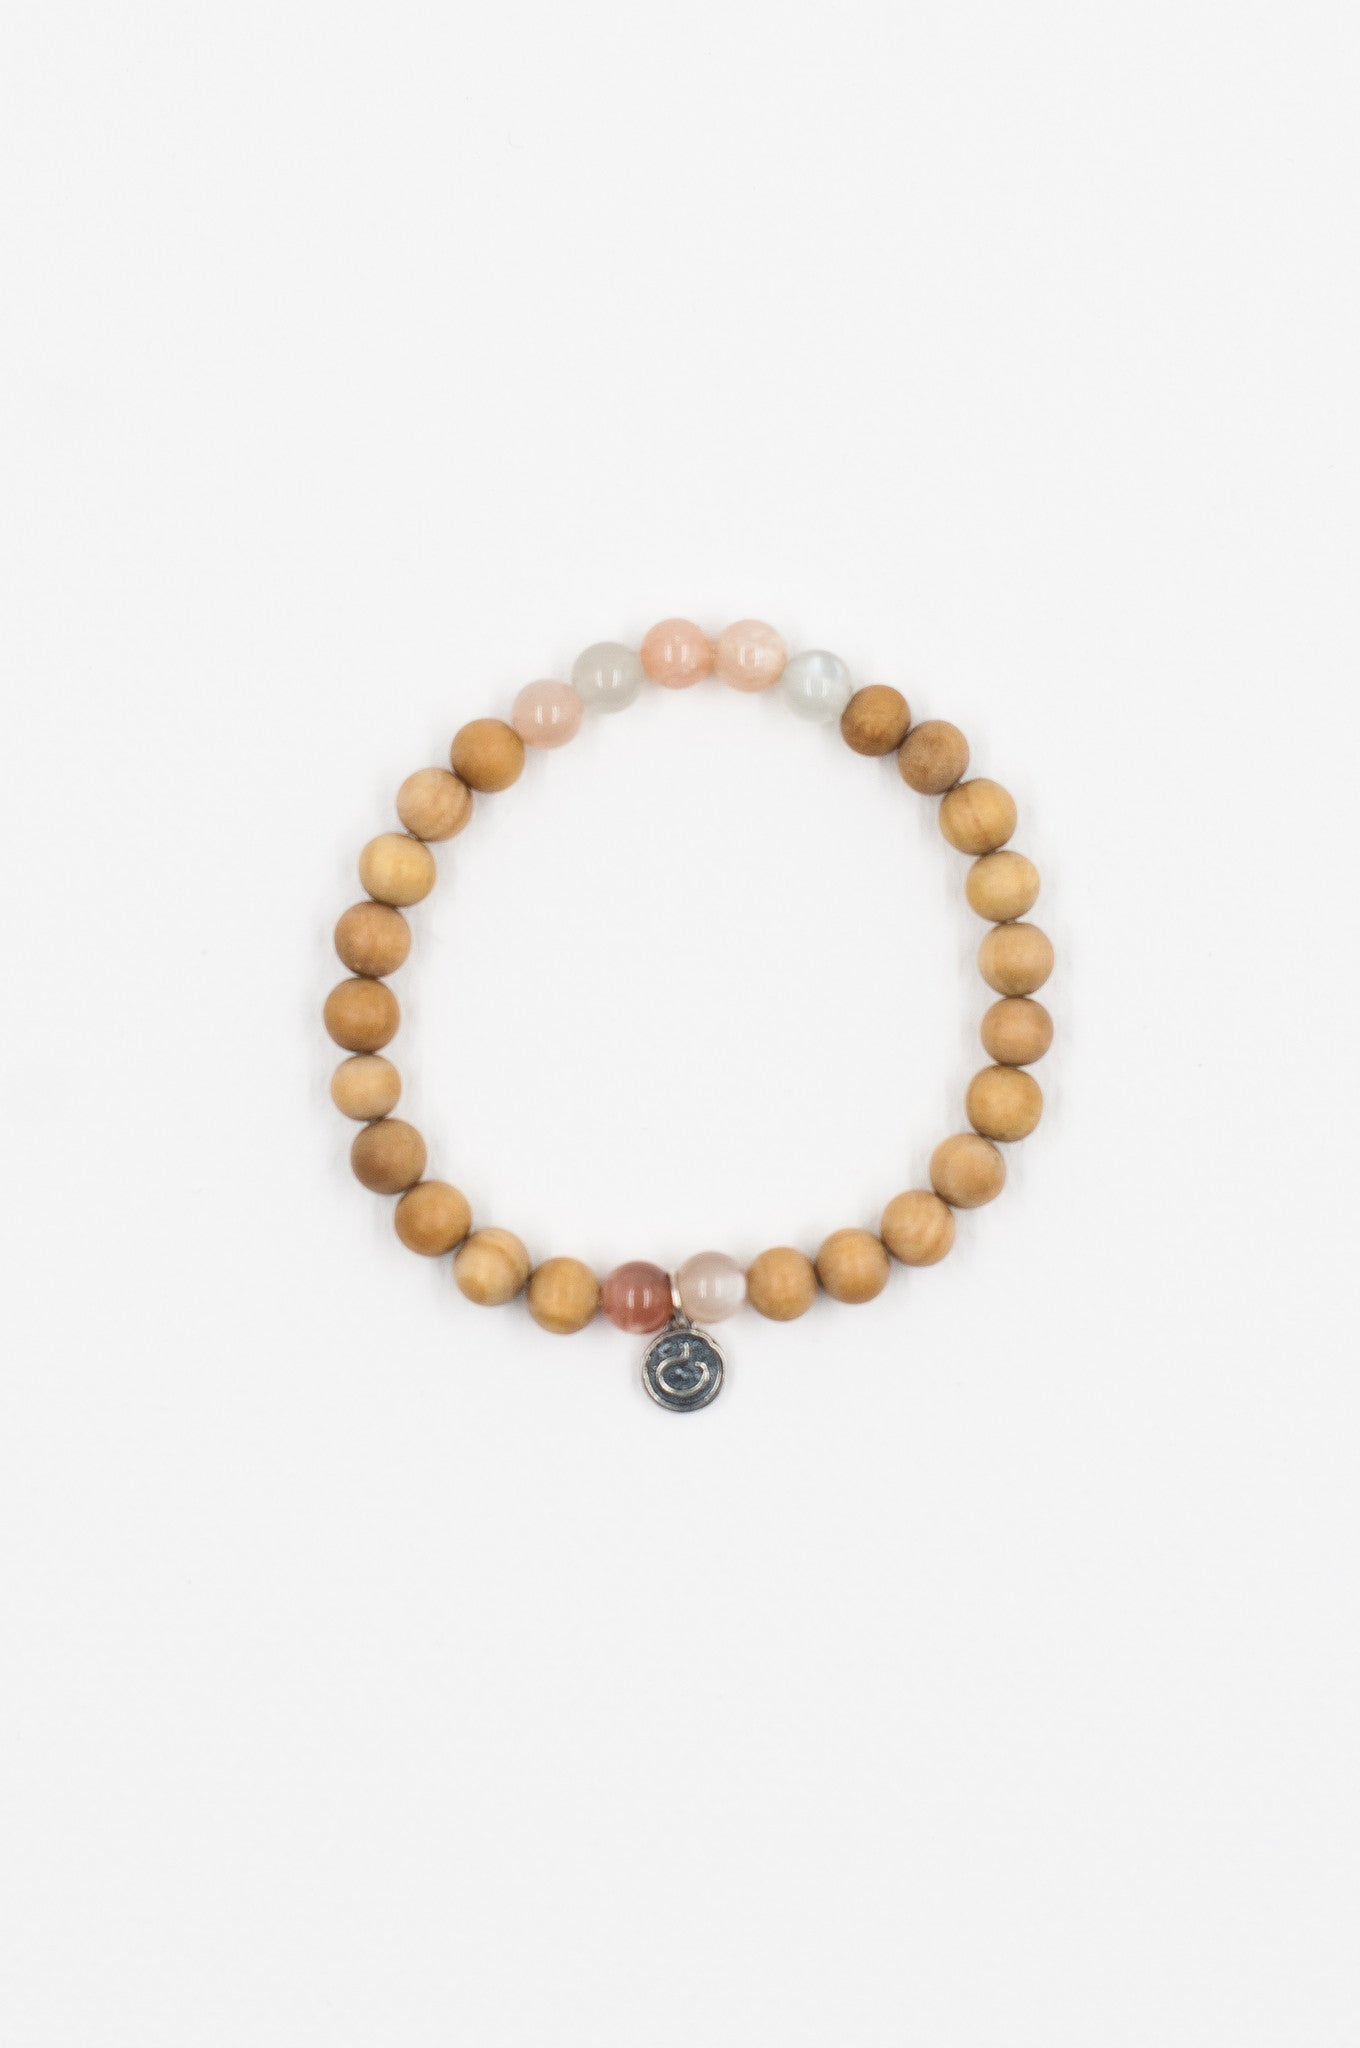 Following Intuition Bracelet